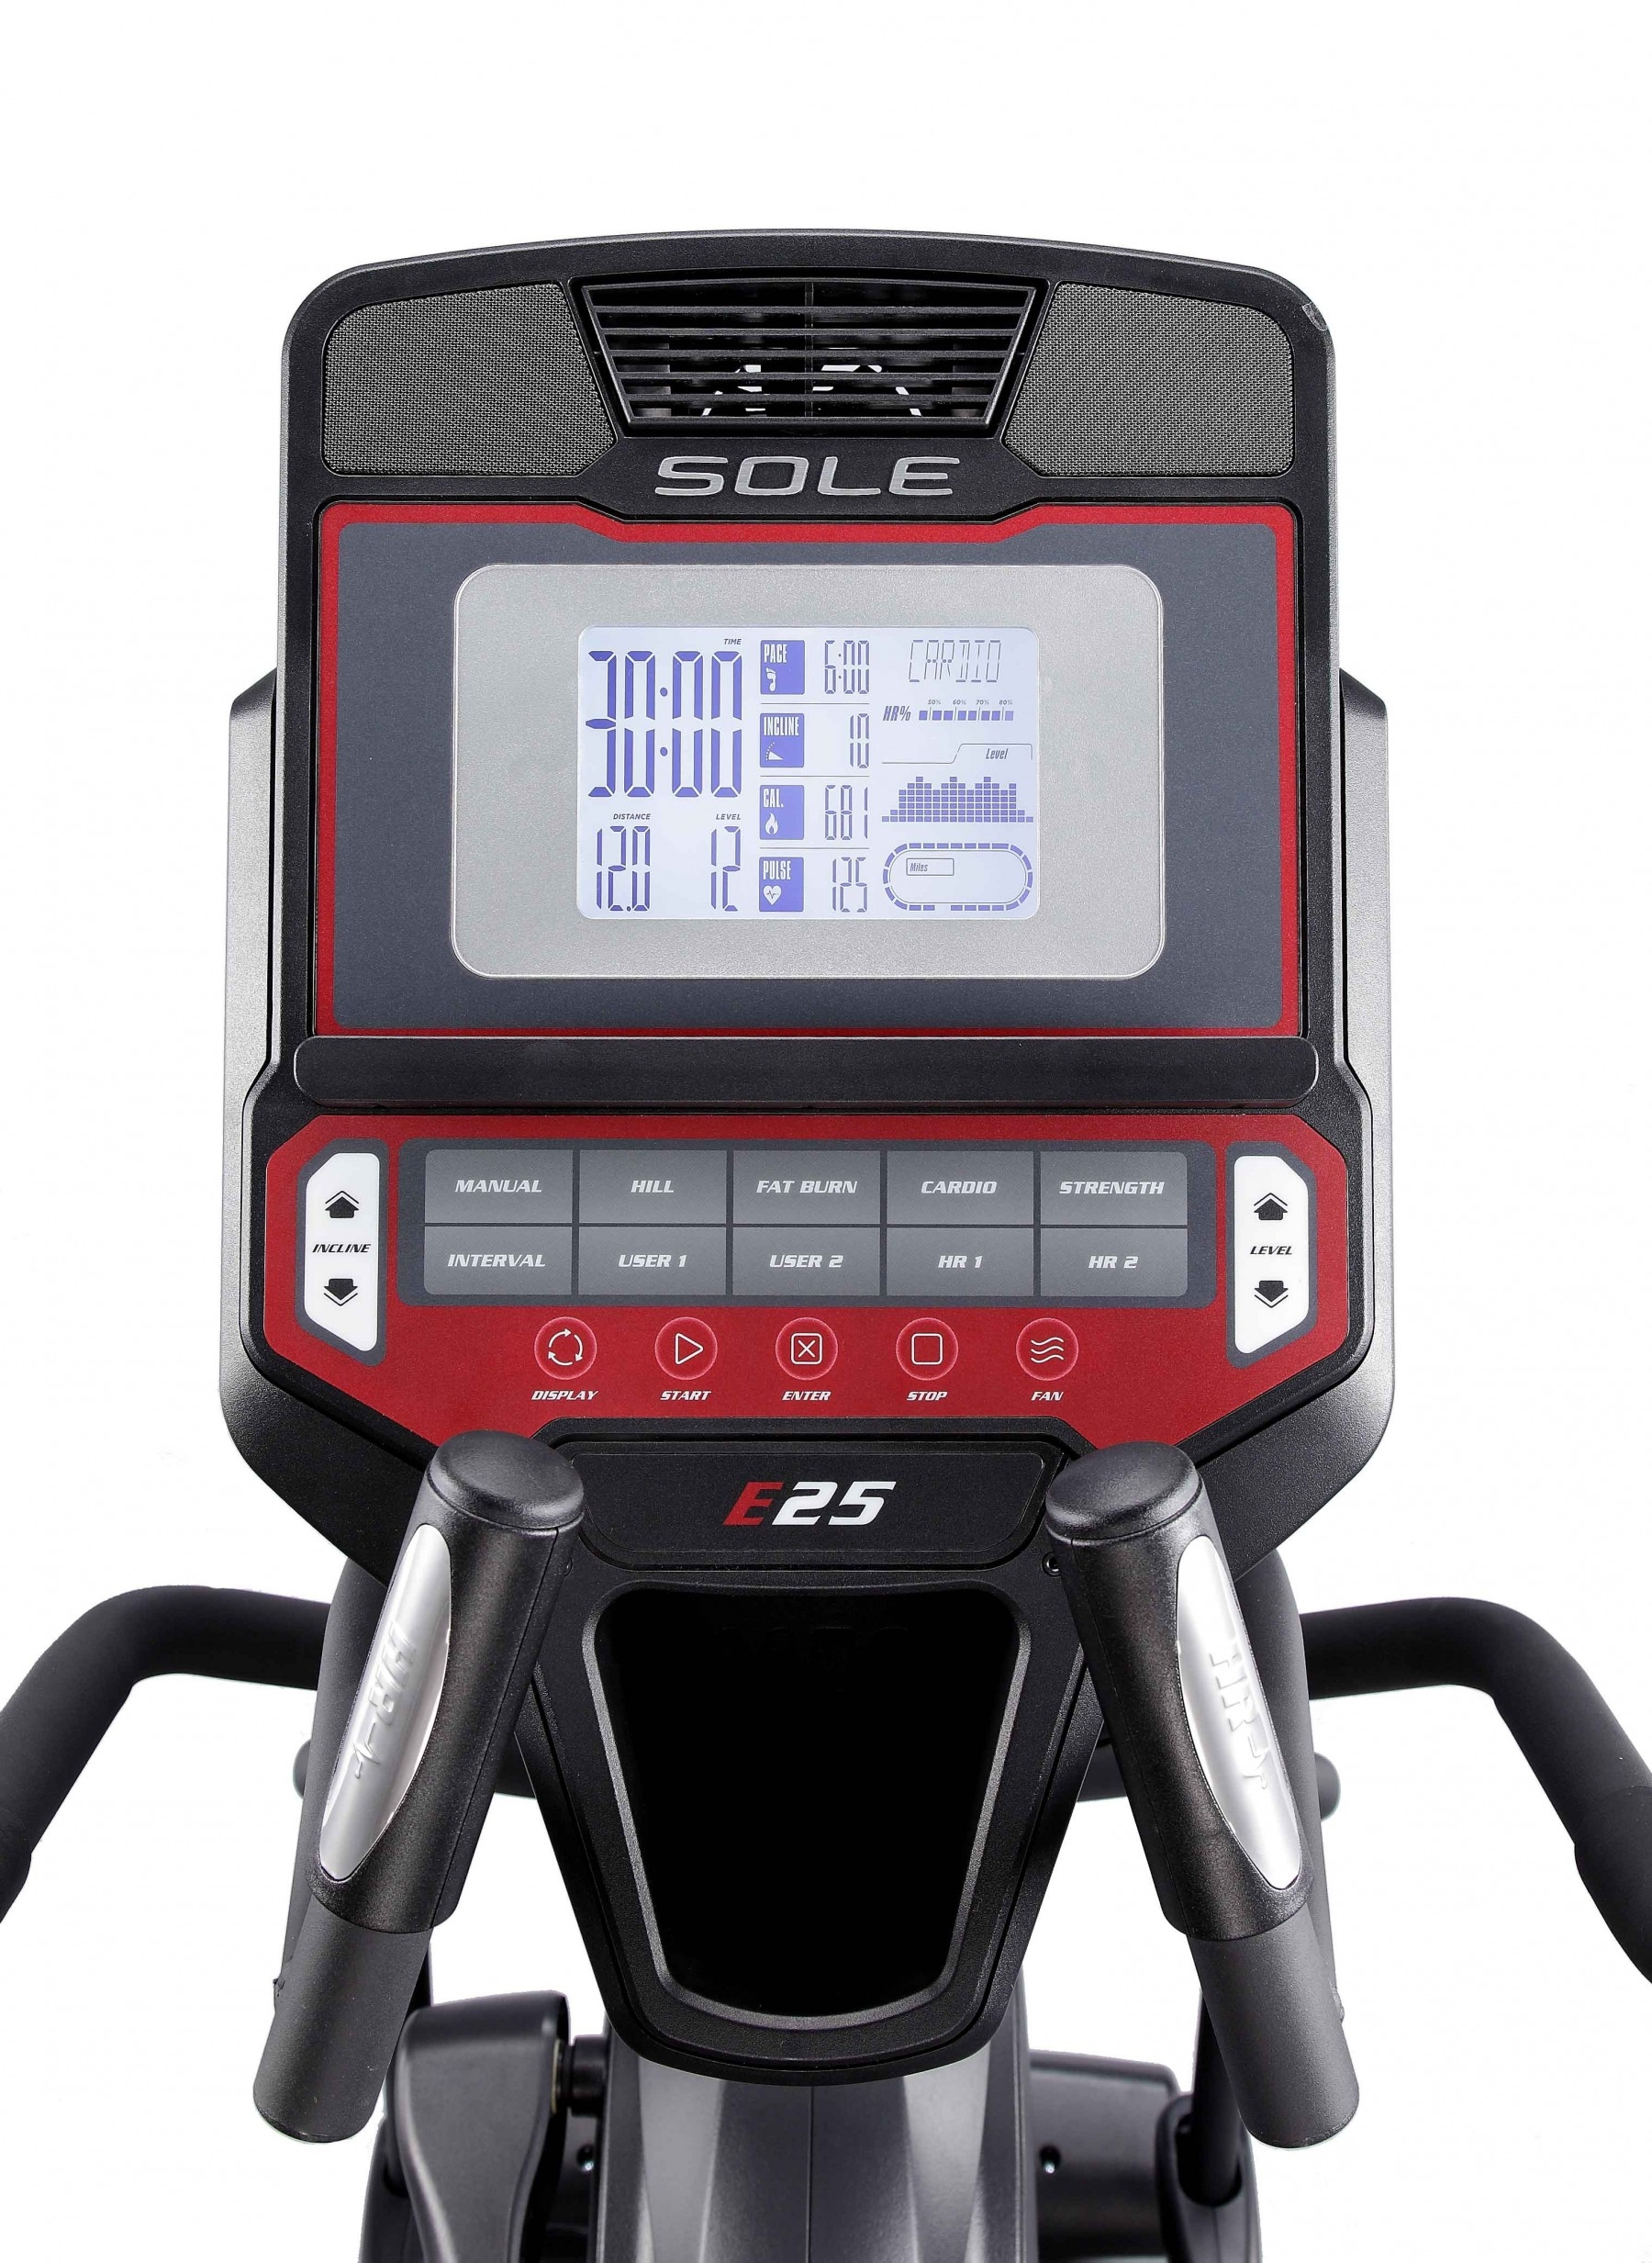 Sole E25 Cross Trainer Console